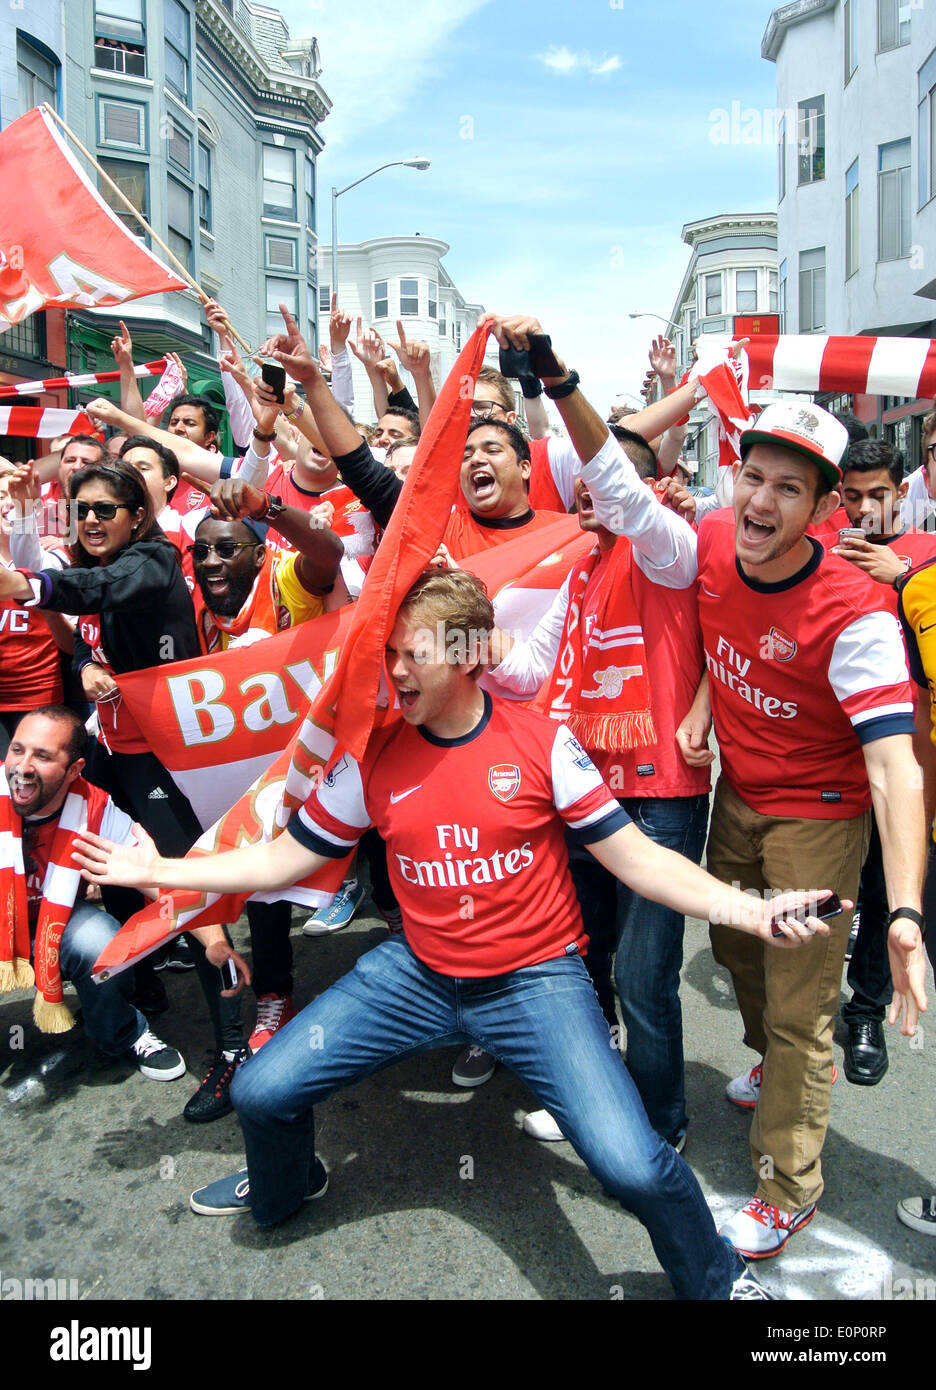 arsenal fans celebrate FA cup championship win on Grant Street San Francisco - Stock Image